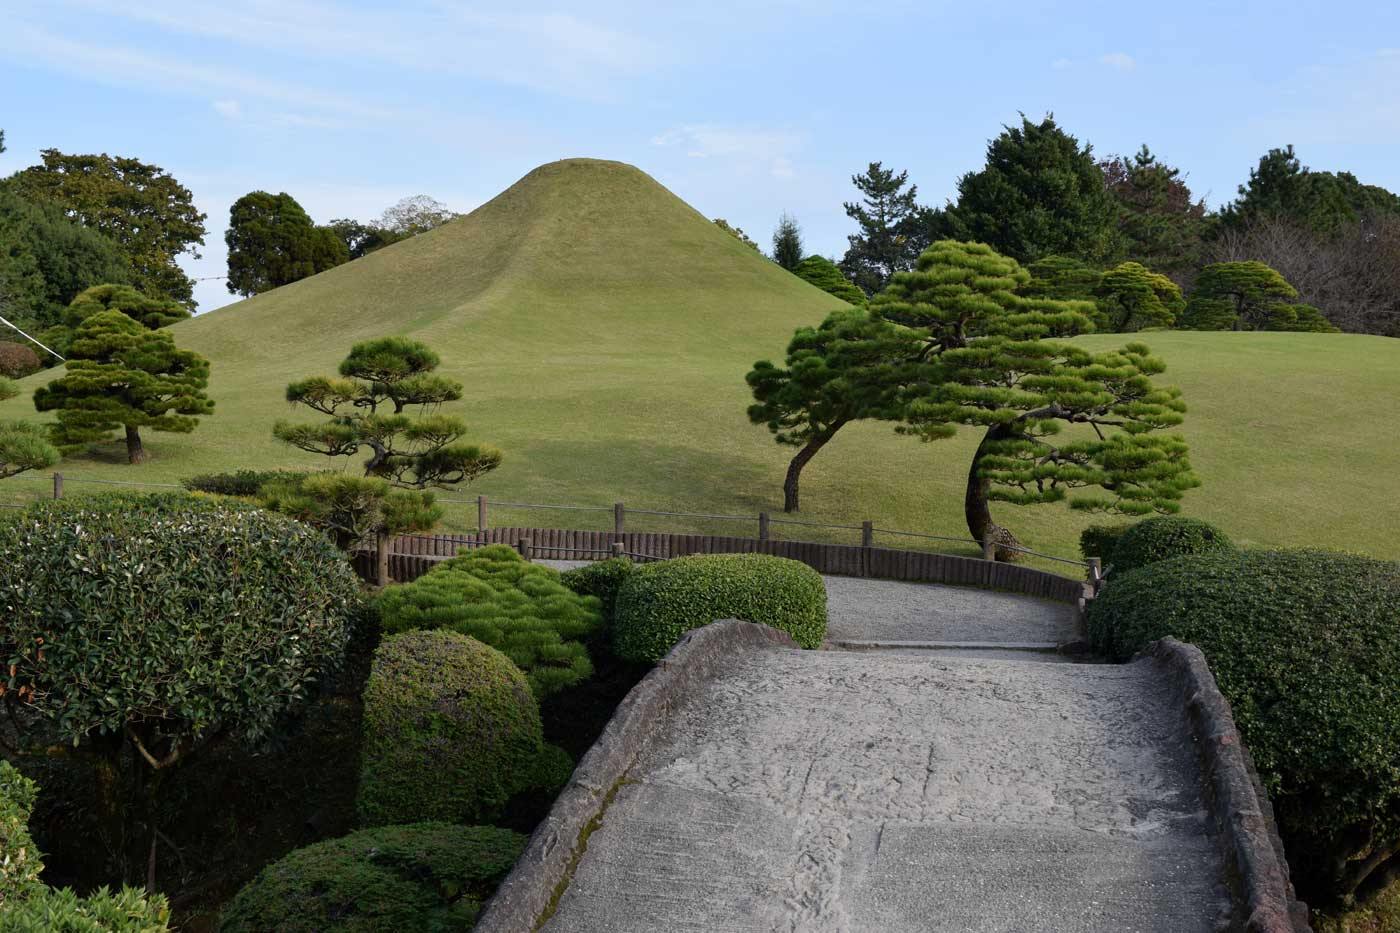 Miniaturised landscapes at Suizen-ji Garden. Black pines evoke mountainous sceneries.